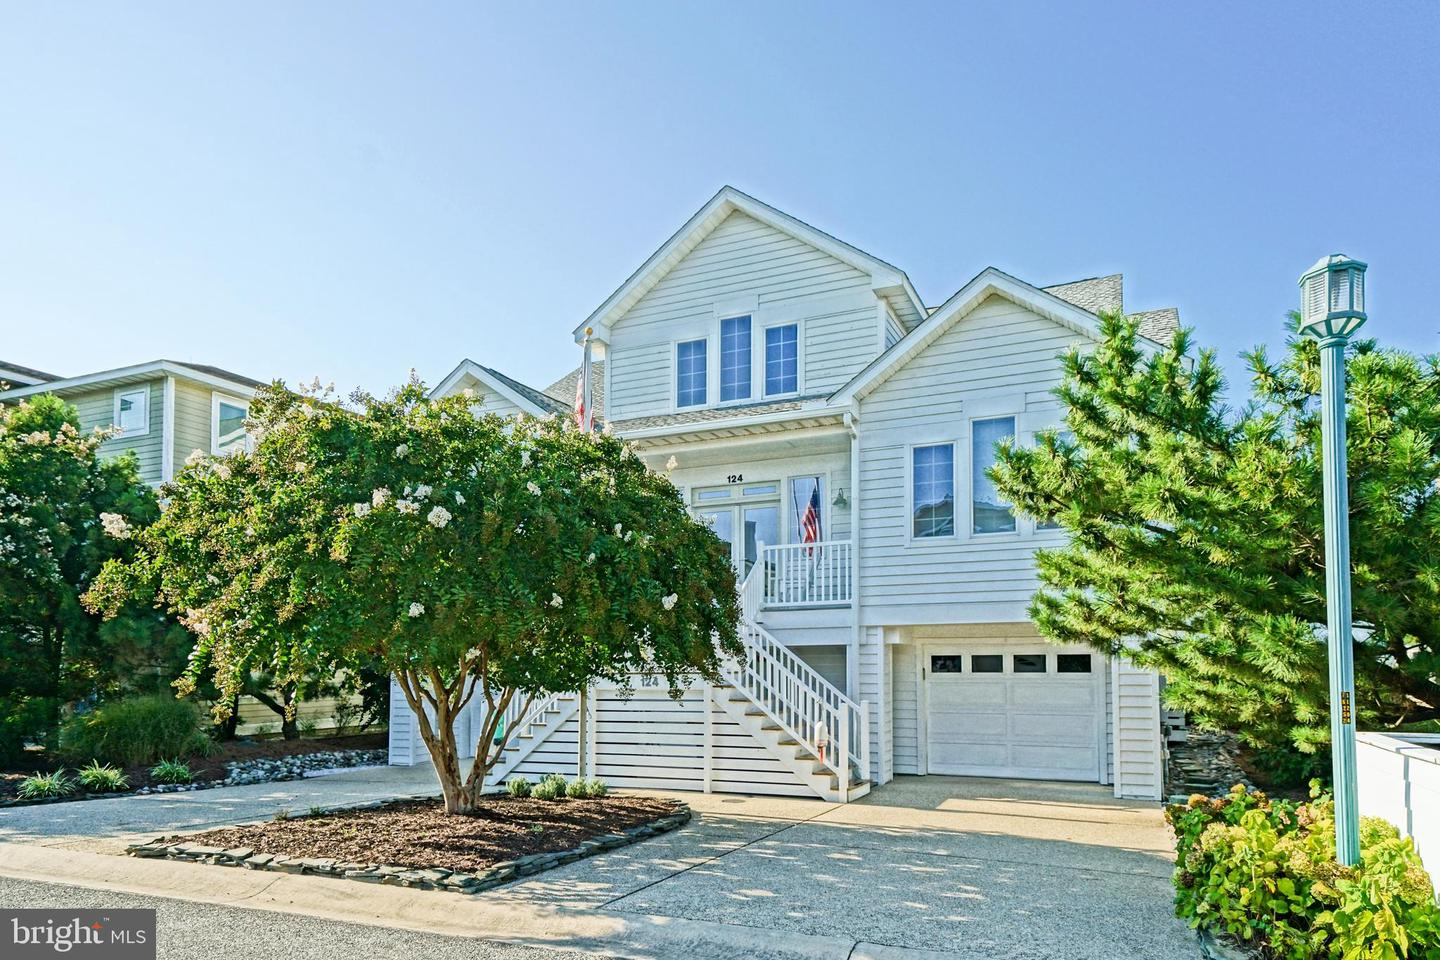 DESU147606-302022573630-2020-06-30-19-11-20 124 W Cape Shores Dr | Lewes, DE Real Estate For Sale | MLS# Desu147606  - Lee Ann Group